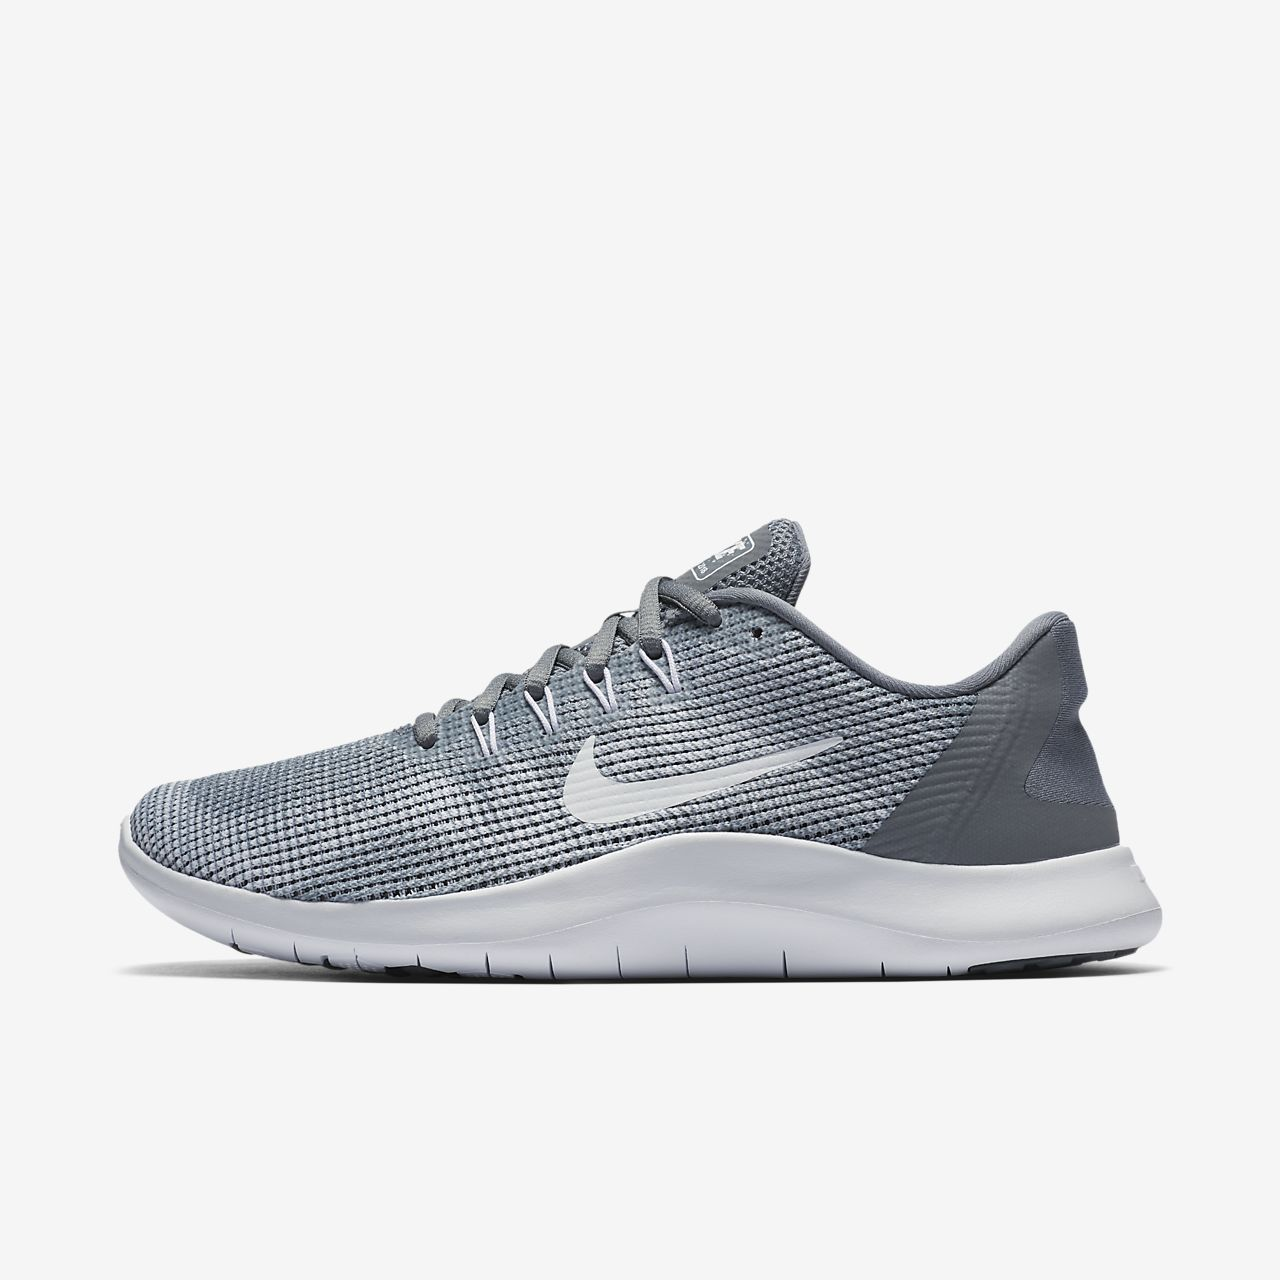 5d38076dedf8f Low Resolution Nike Flex RN 2018 Women s Running Shoe Nike Flex RN 2018 Women s  Running Shoe